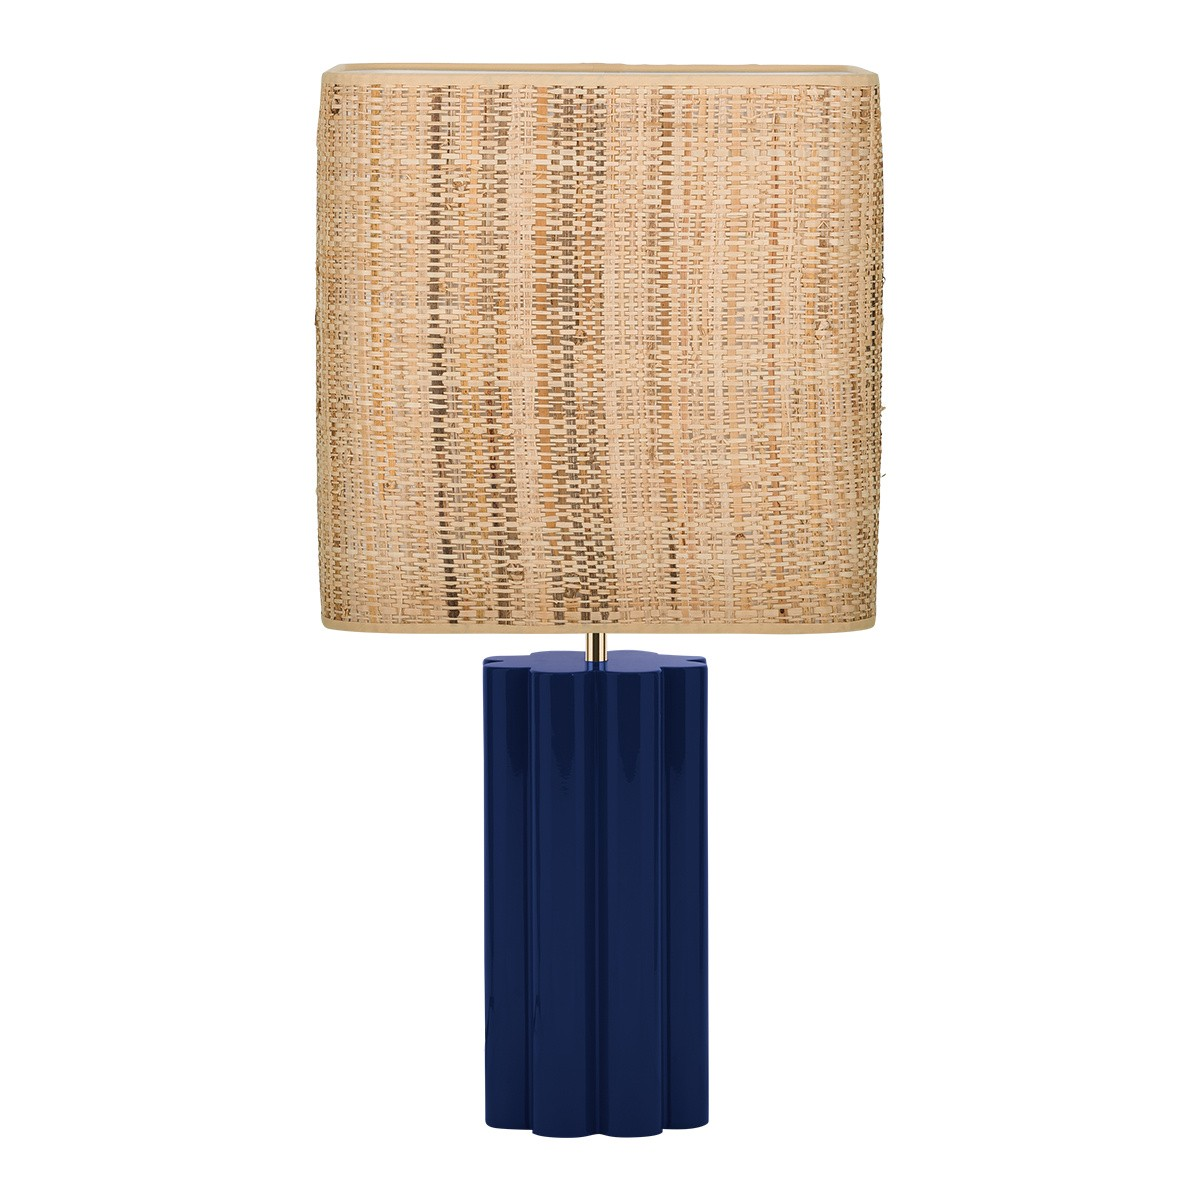 Gioia Table Lamp, Blue and Rattan